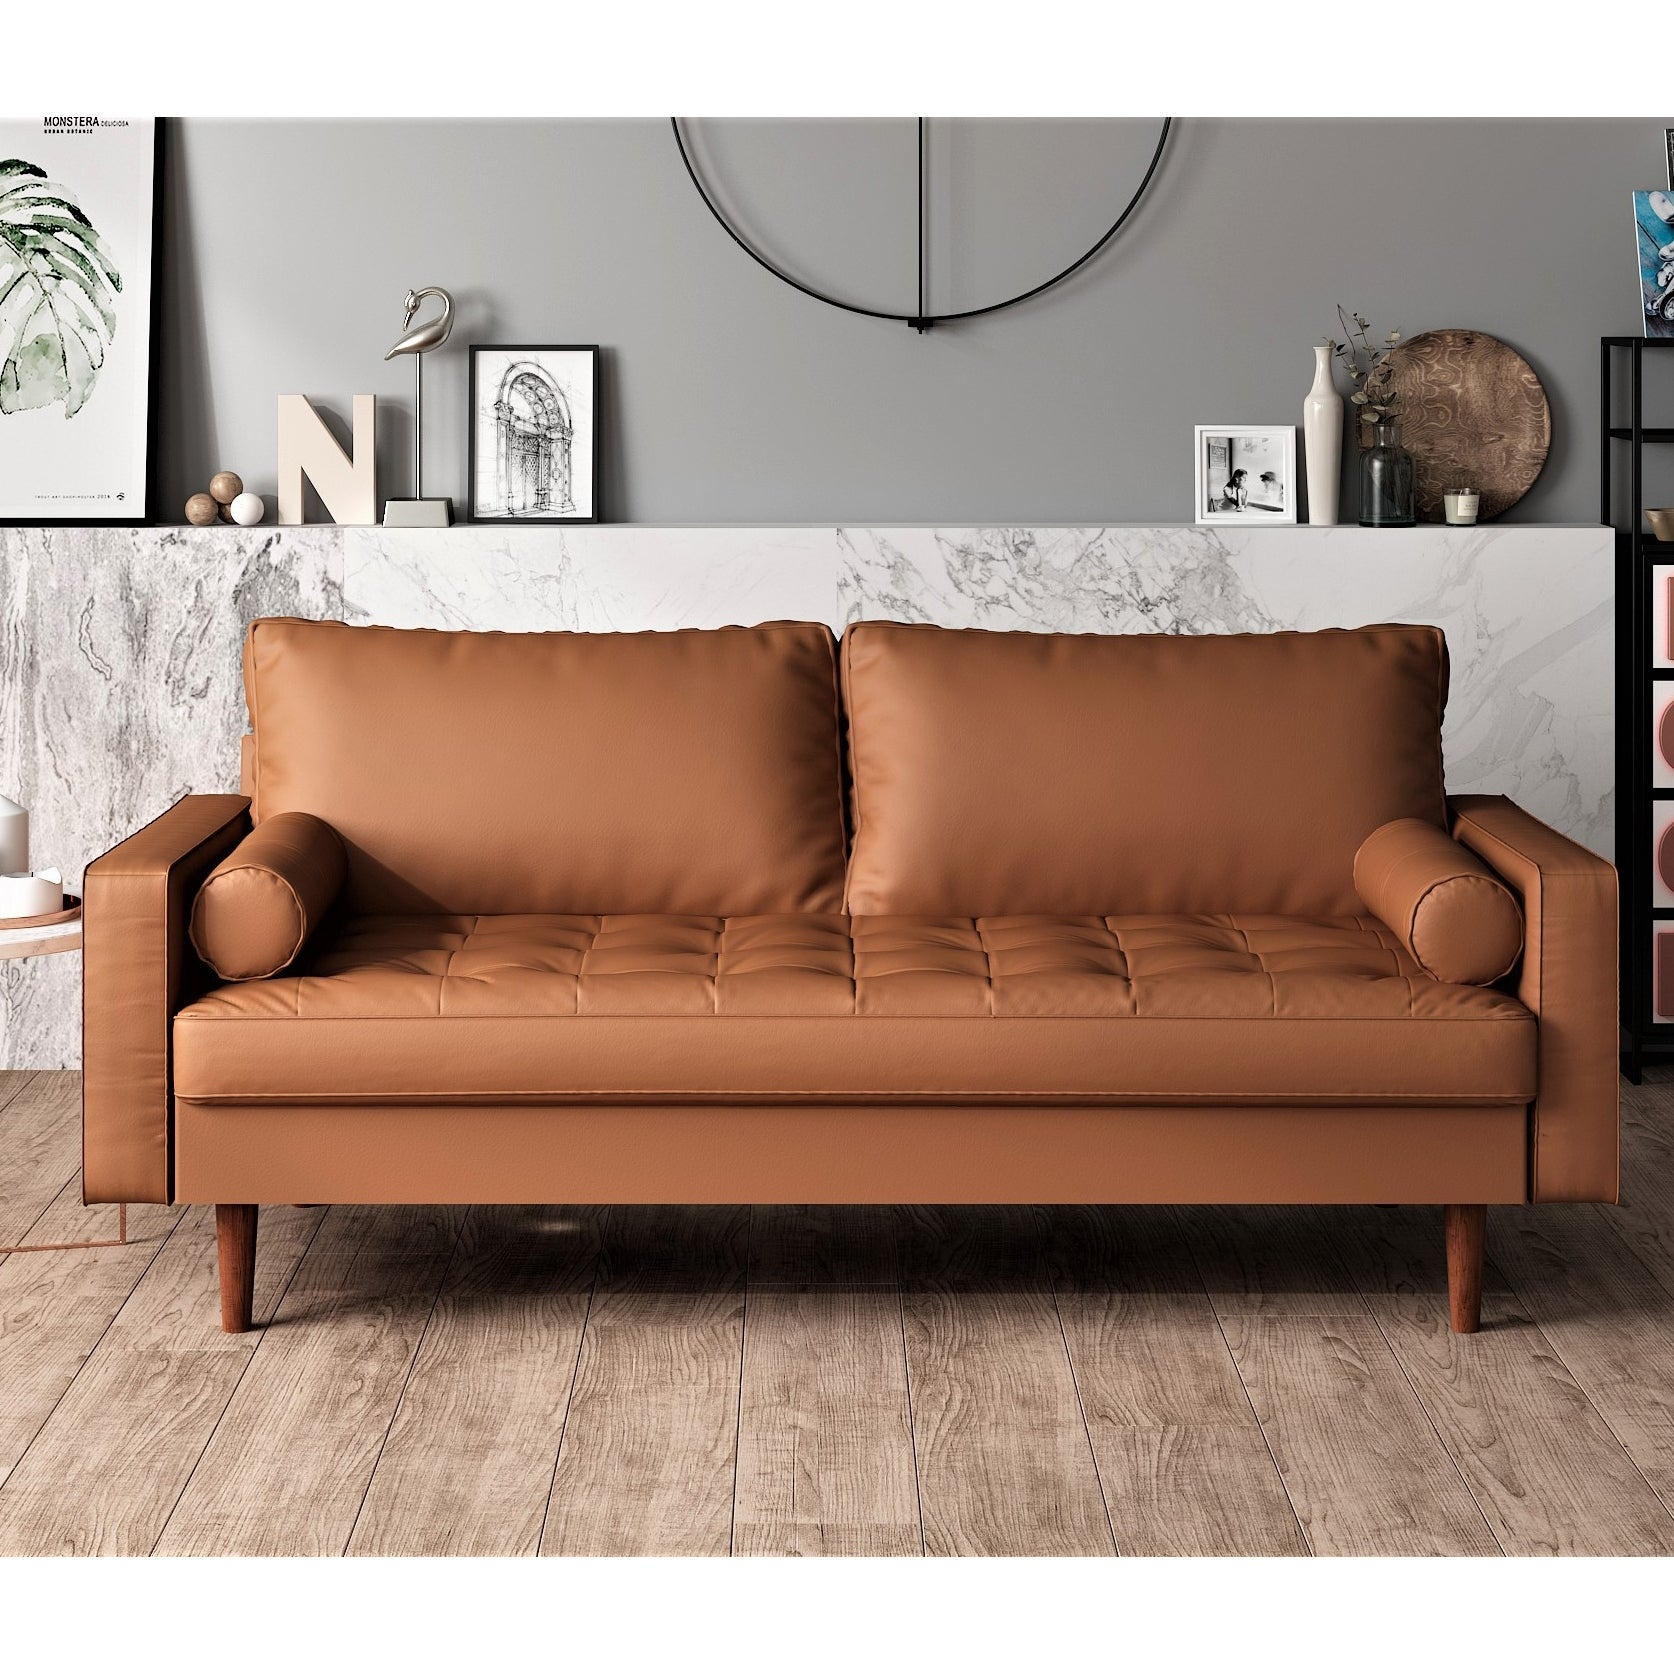 Us Pride Faux Leather Mid Century Modern Sofa Overstock 26033067